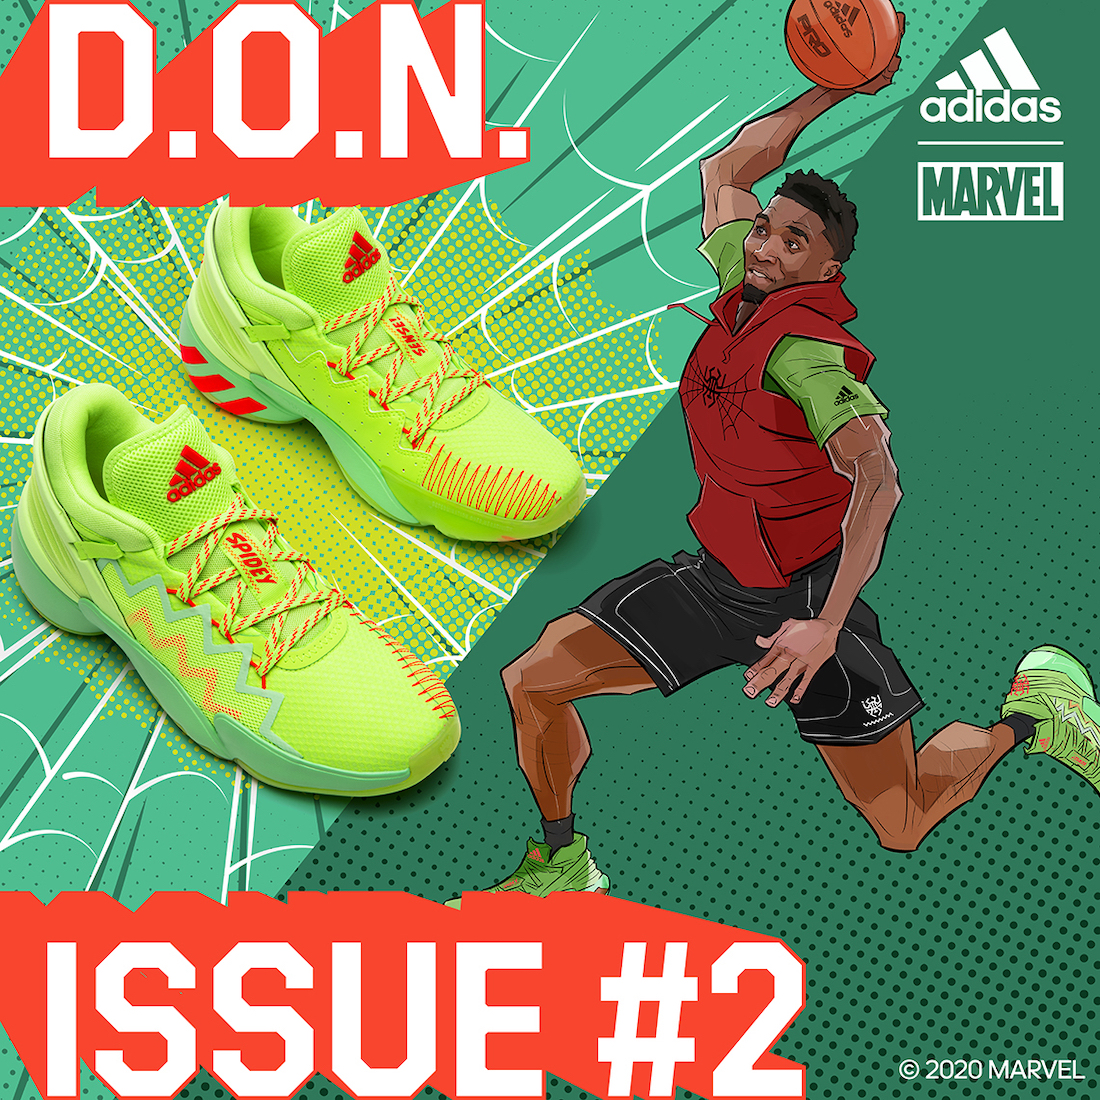 Marvel adidas DON Issue 2 Spidey-Sense Release Date Info